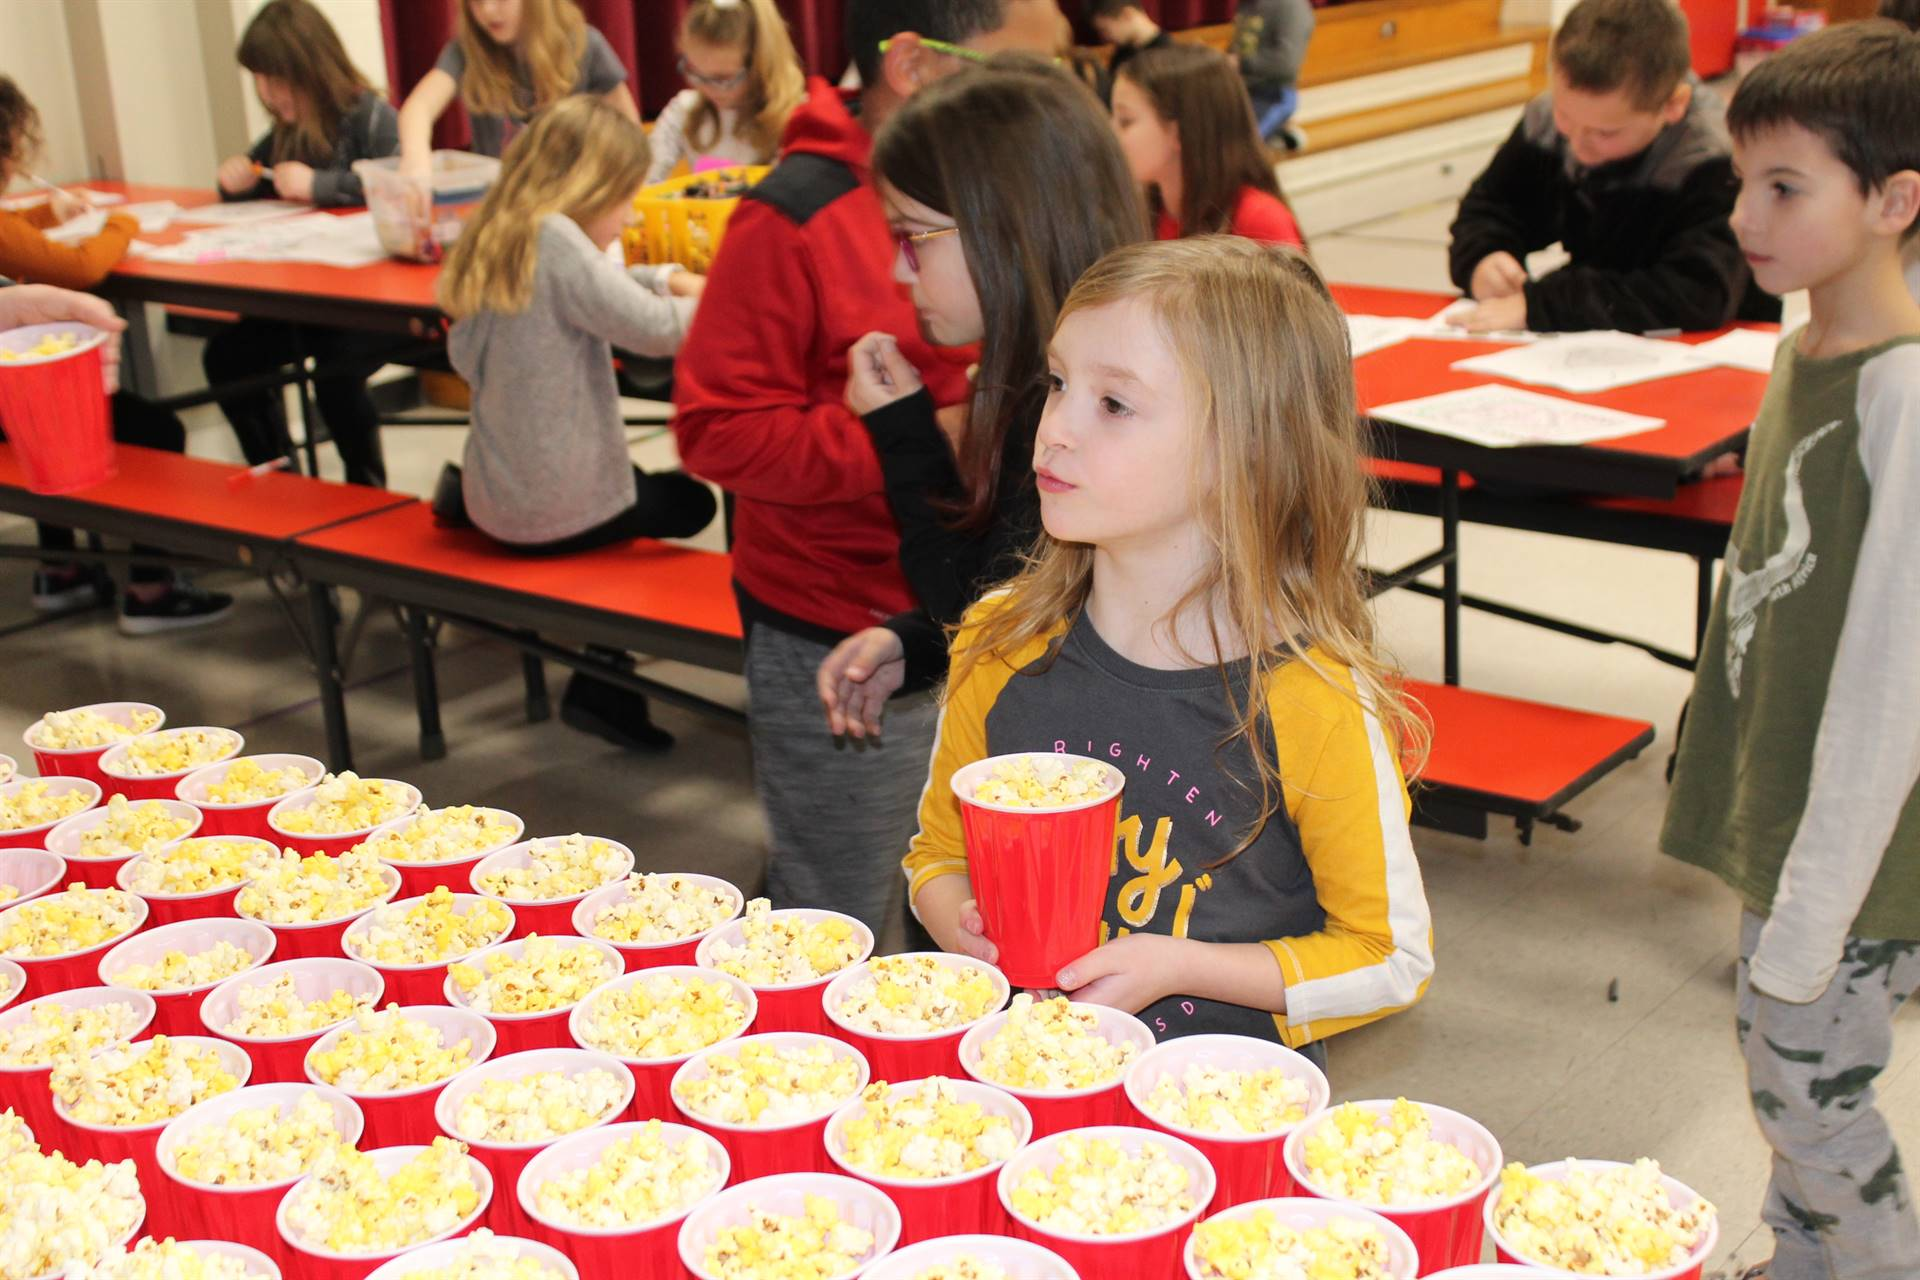 Student taking a cup of popcorn